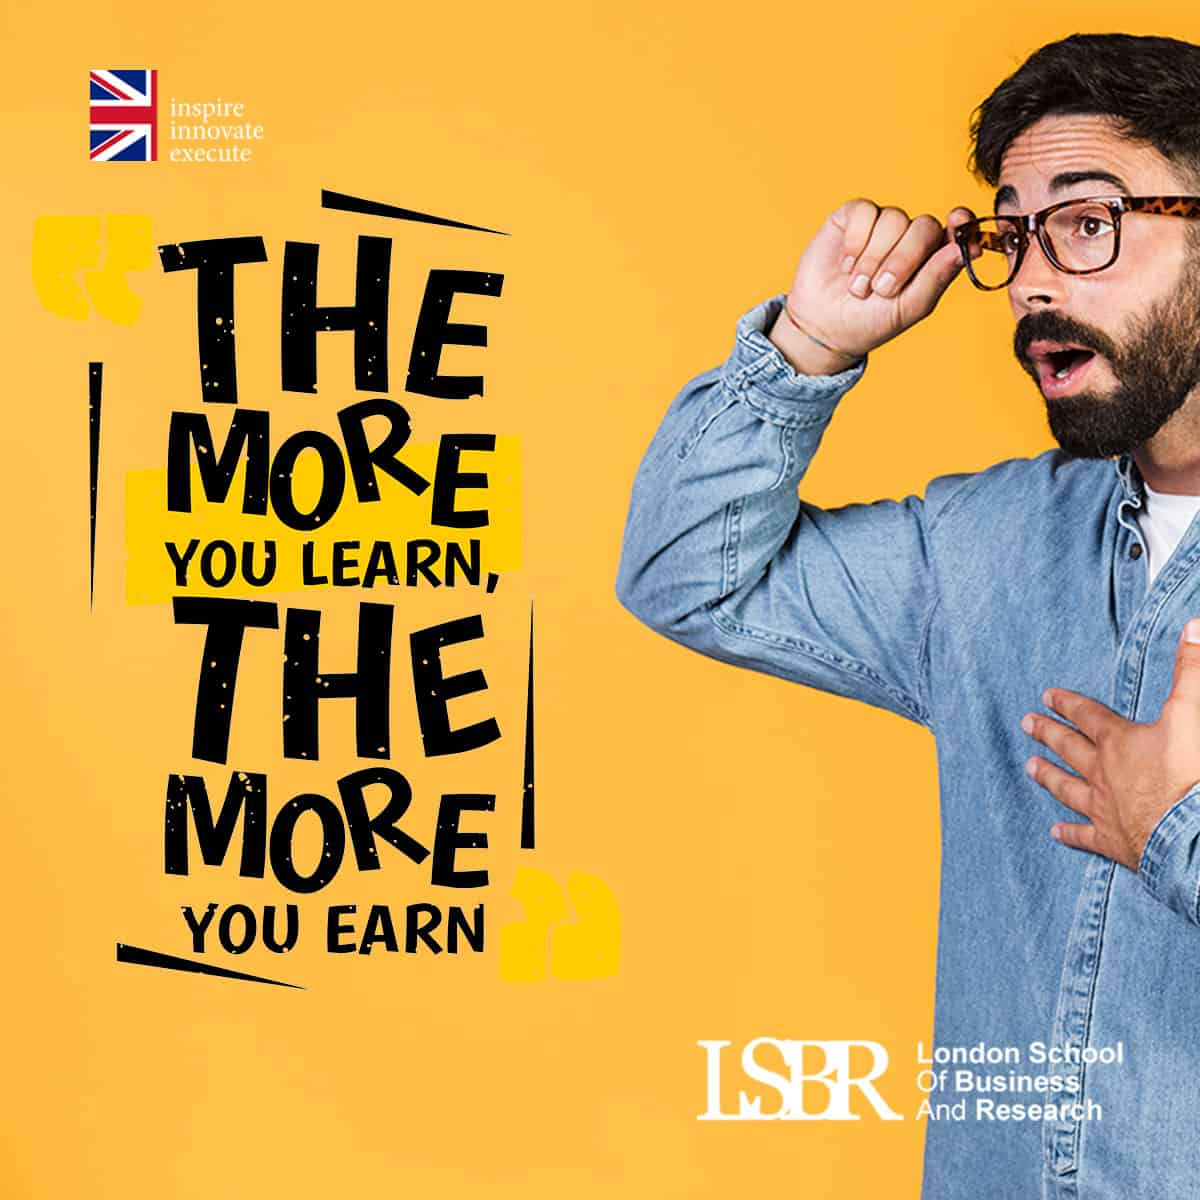 LSBR Motivational Quote - The more you learn, the more you earn